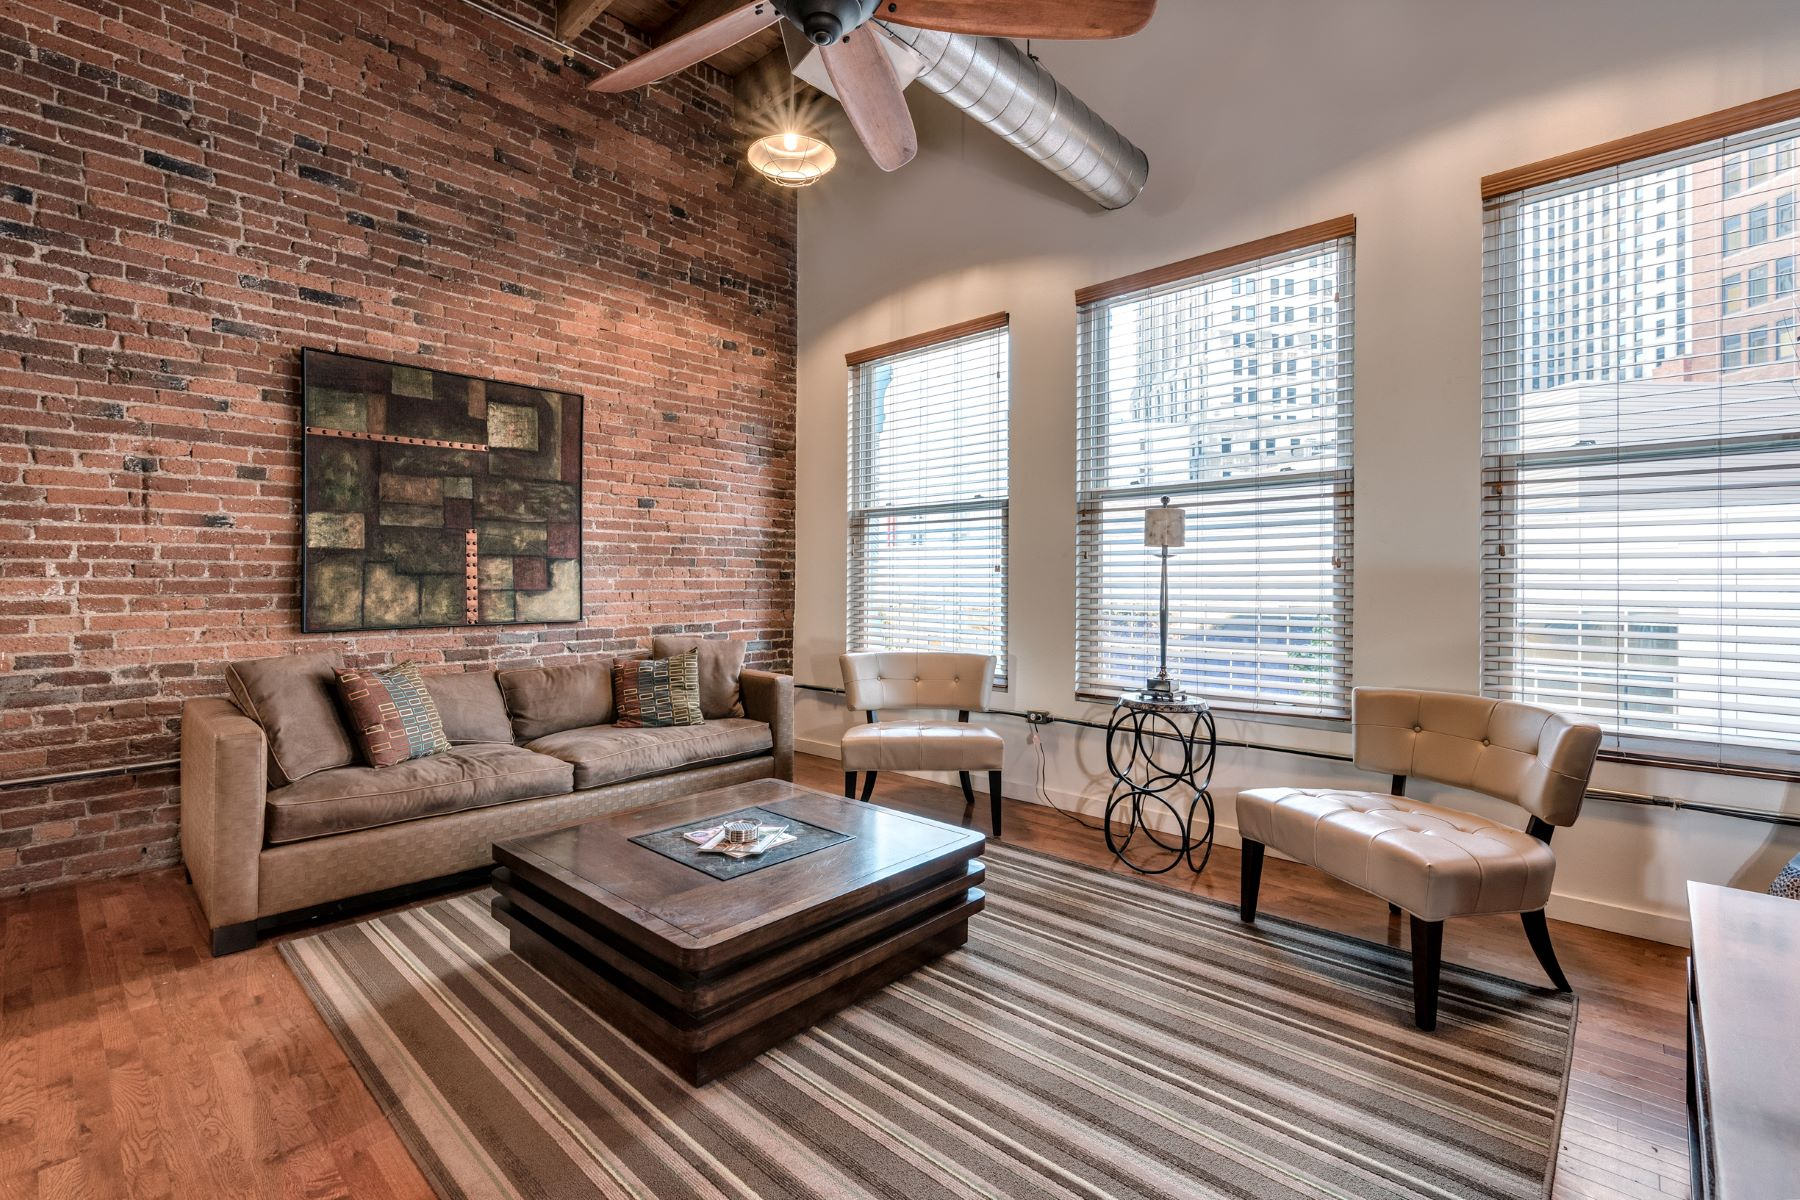 Condominium for Sale at Keystone Lofts Condominum 951 Liberty Ave 4B Pittsburgh, Pennsylvania 15222 United States